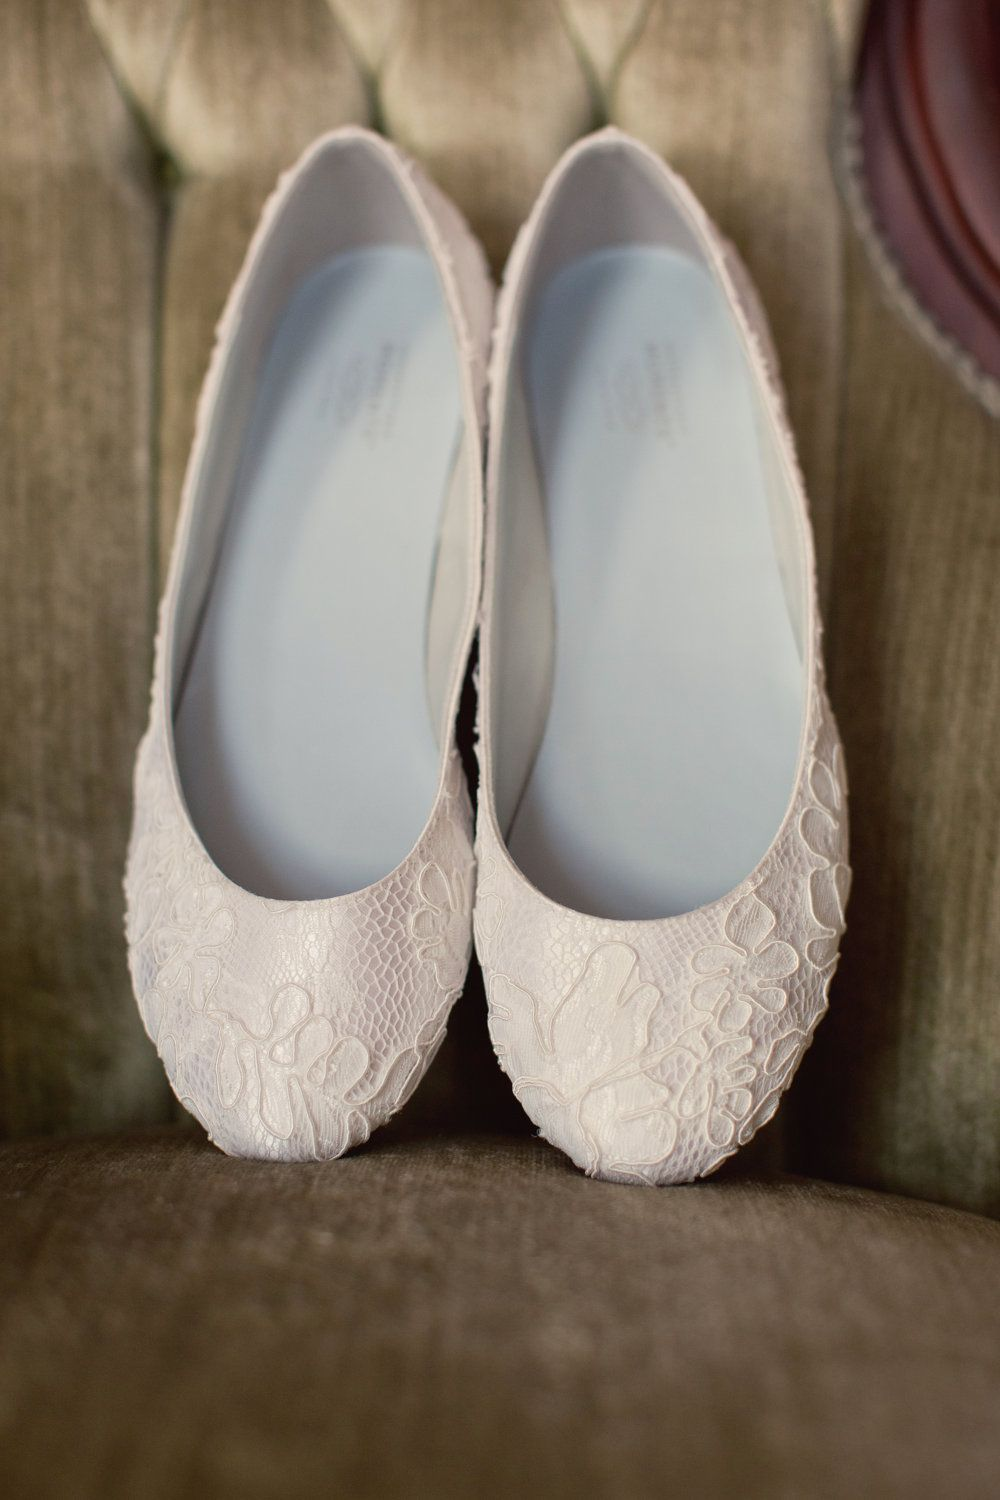 simple and elegant lace ballet flats not a dress but perfect